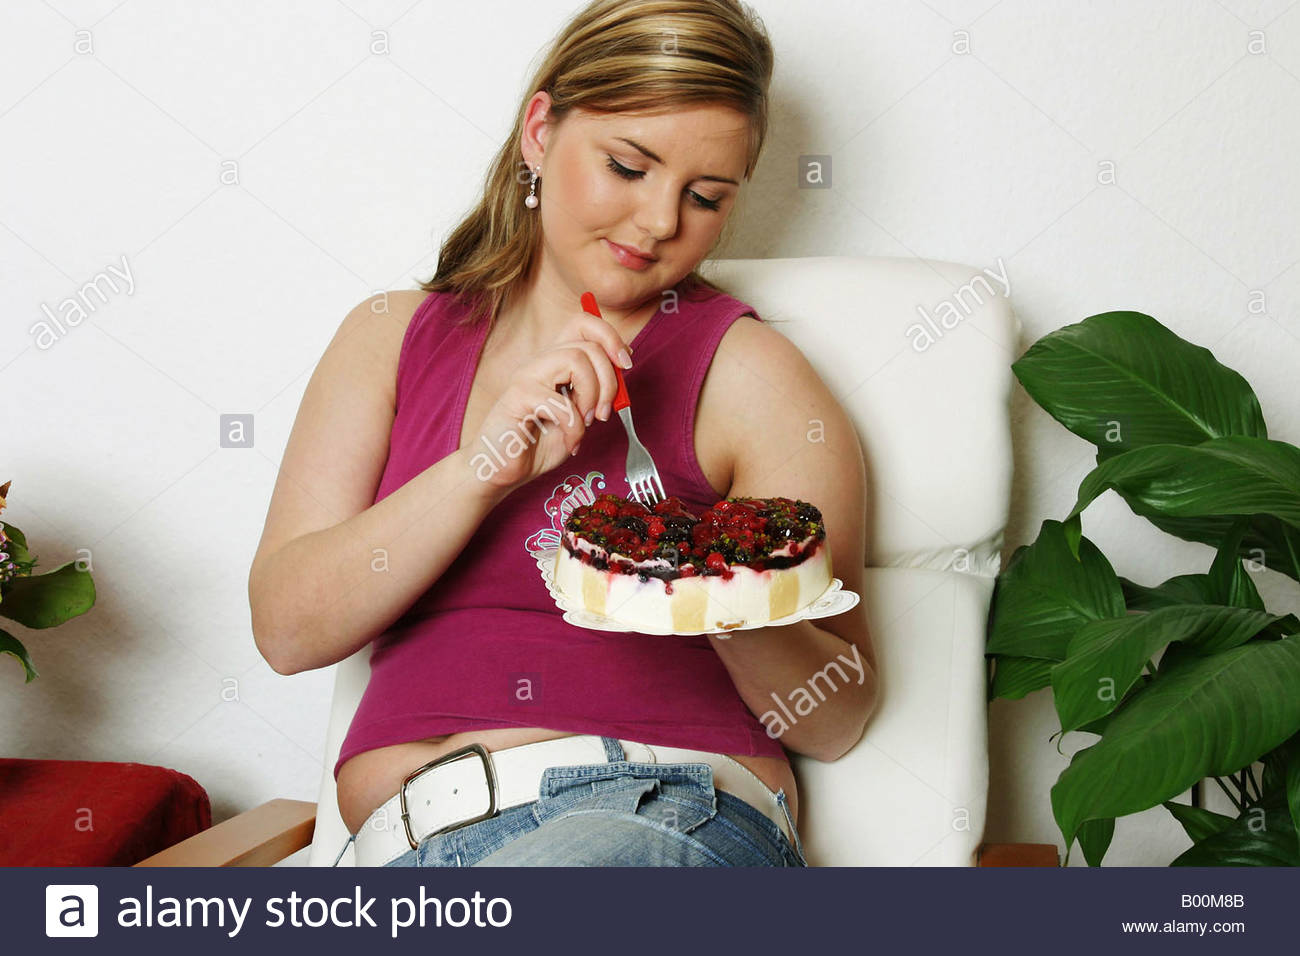 fat girls that are eating